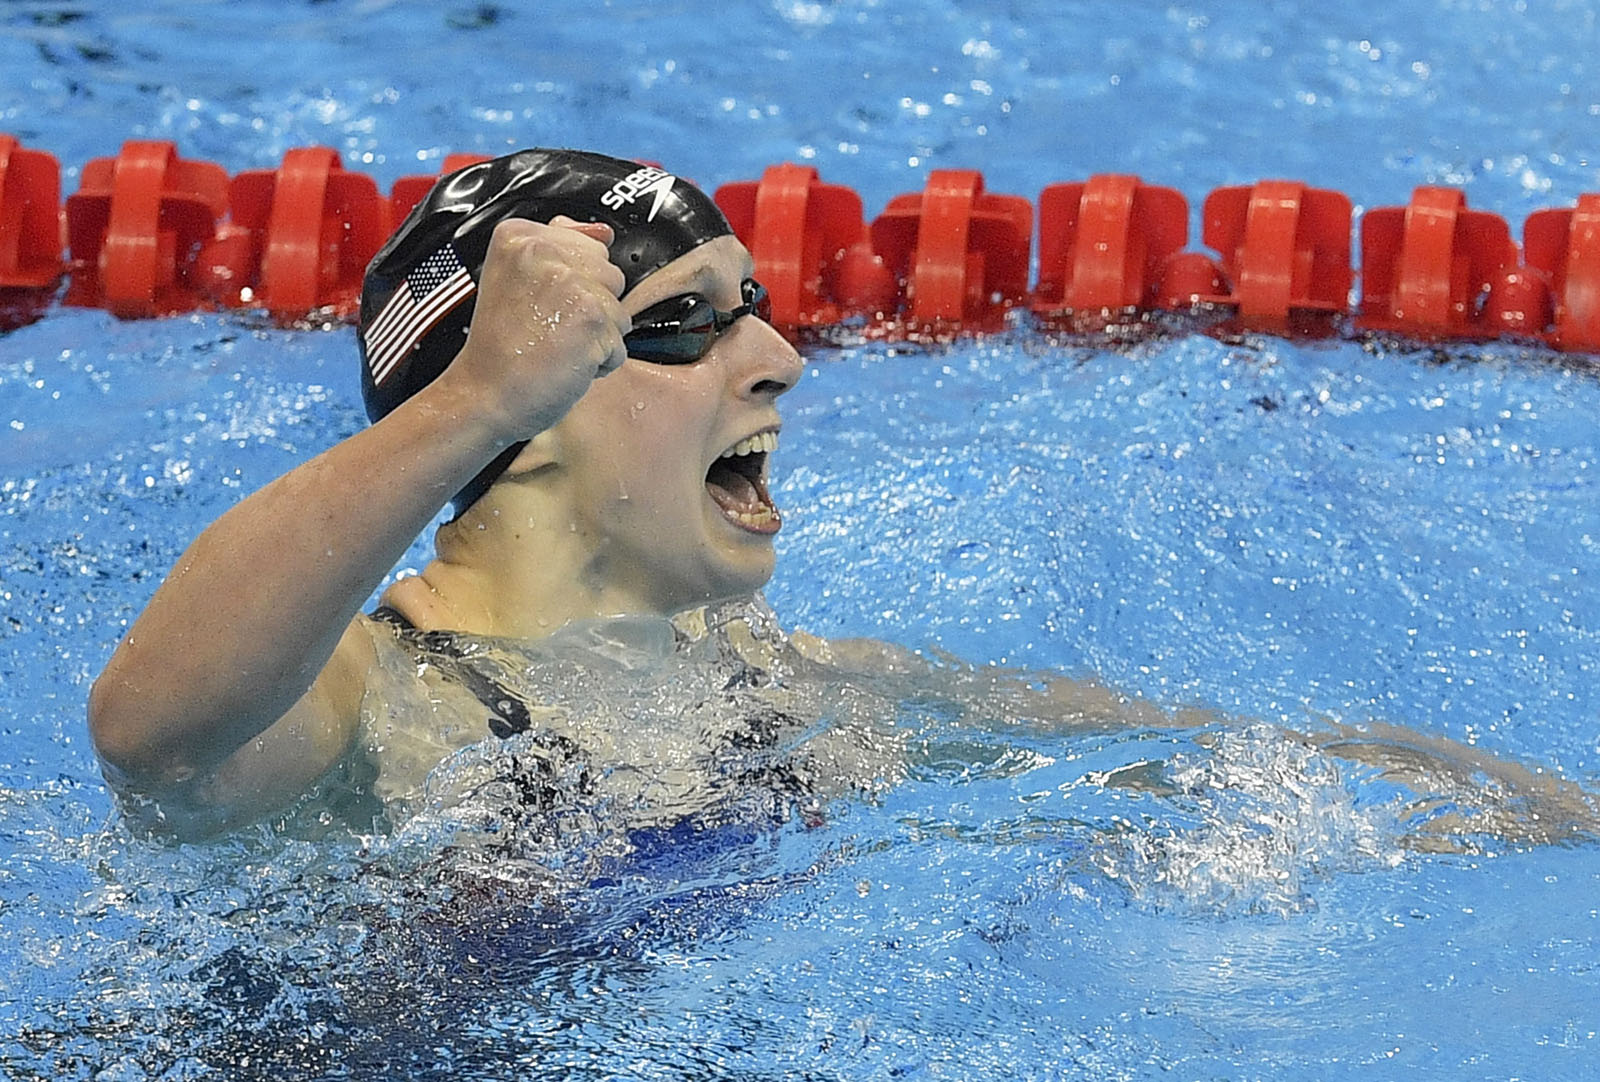 United States' Katie Ledecky celebrates after setting a new world record in the women's 400-meter freestyle final during the swimming competitions at the 2016 Summer Olympics, Sunday, Aug. 7, 2016, in Rio de Janeiro, Brazil. (AP Photo/Martin Meissner)